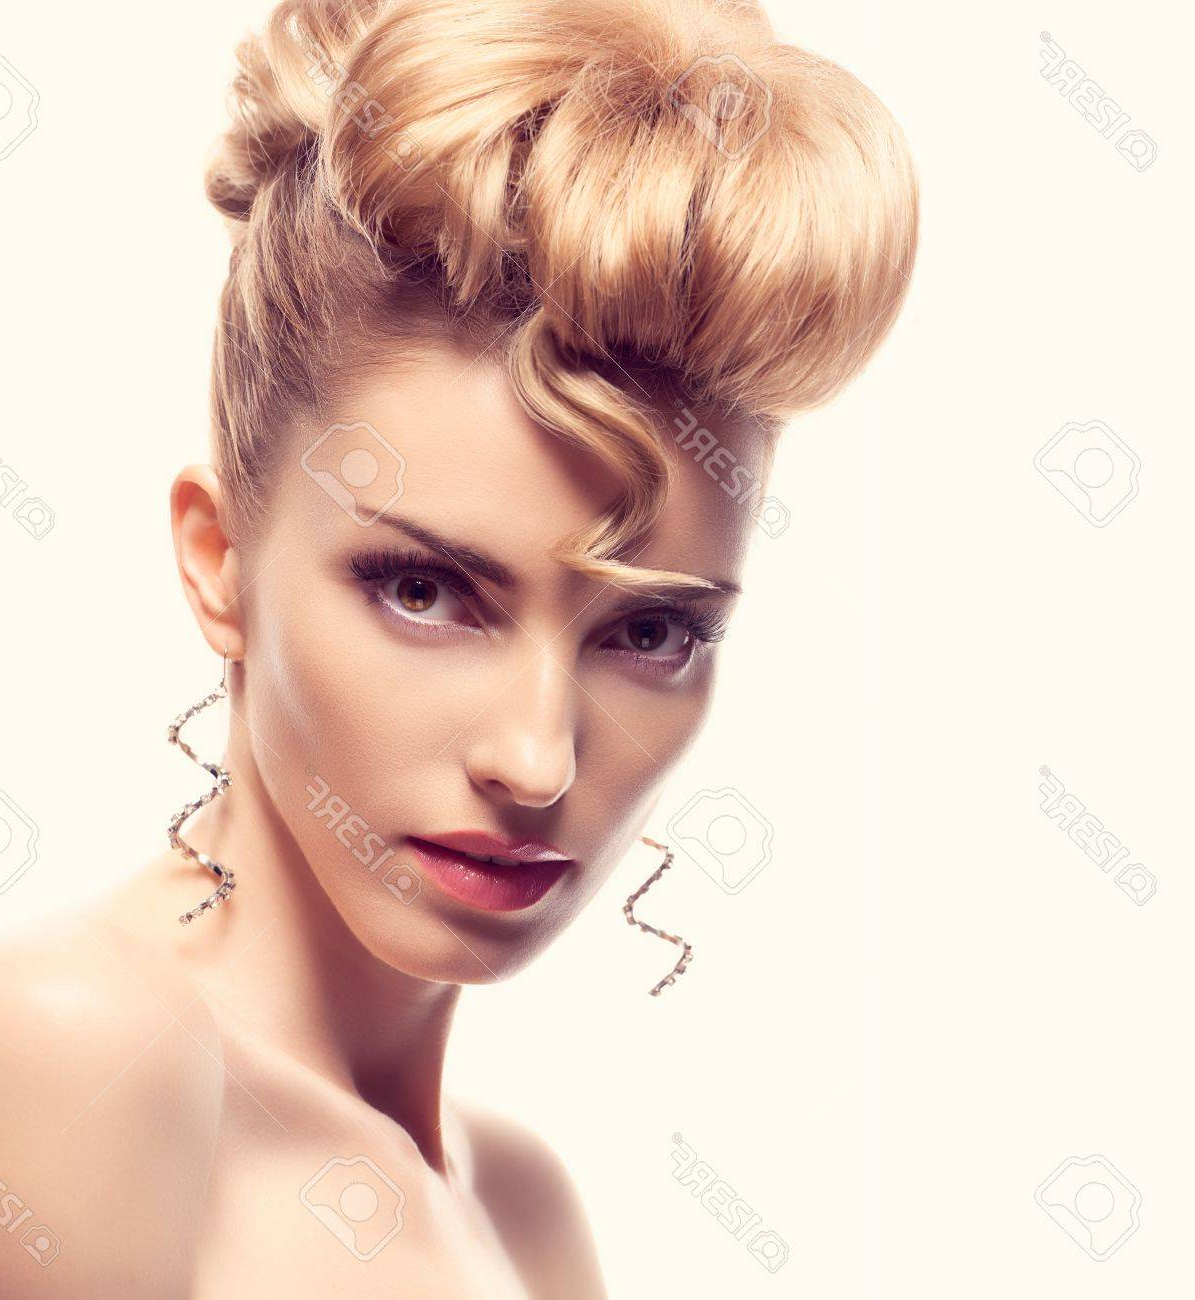 Widely Used Blonde Mohawk Hairstyles Intended For Fashion Natural Makeup. Beauty Woman With Mohawk Hairstyle (View 8 of 20)